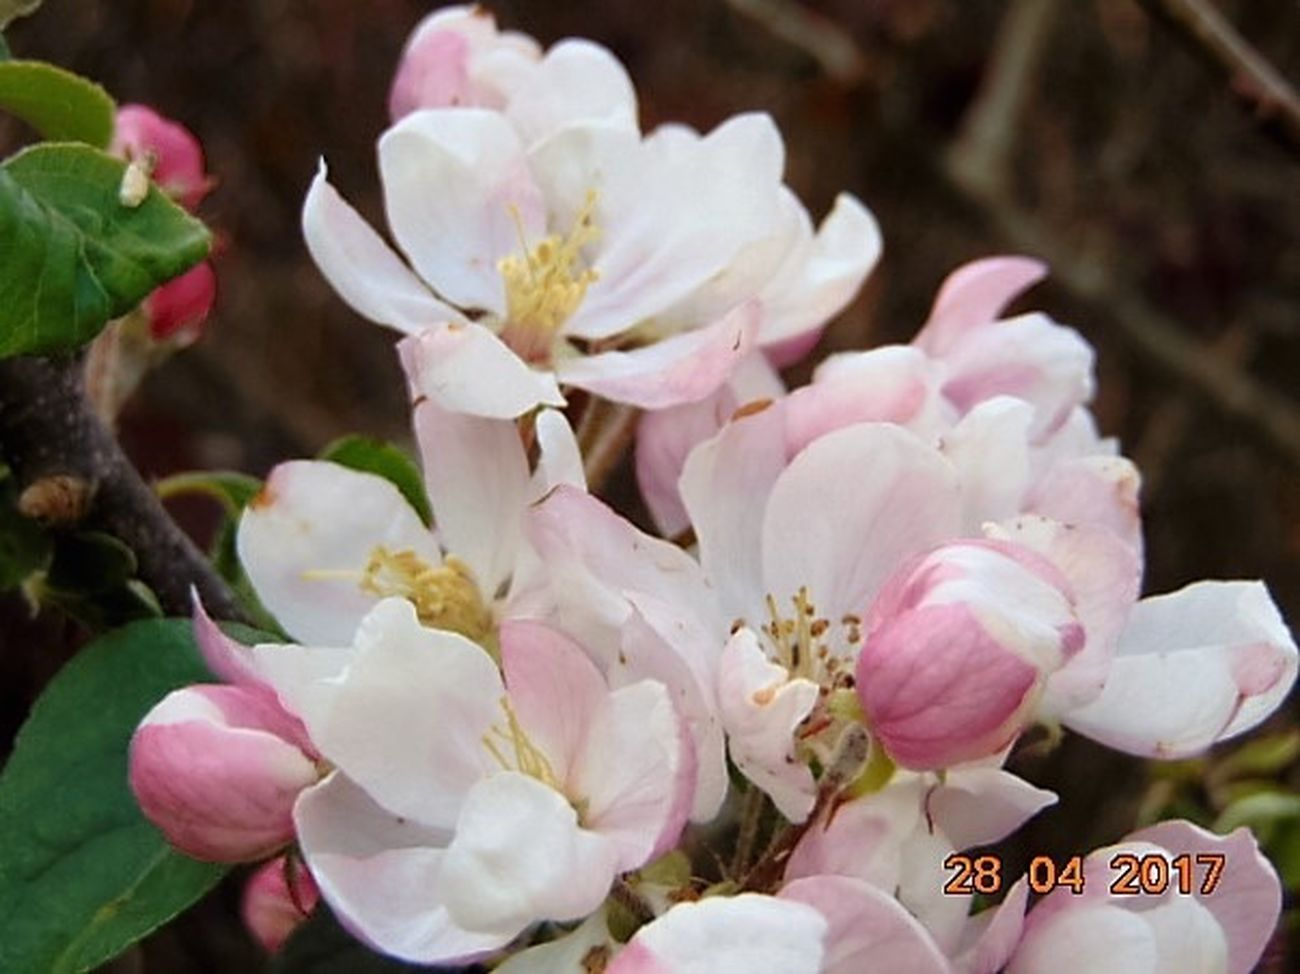 Flower Petal Fragility Flower Head Freshness Close-up Nature Beauty In Nature No People Pink Color Growth Day Plant Outdoors Apple Blossom St Agnes